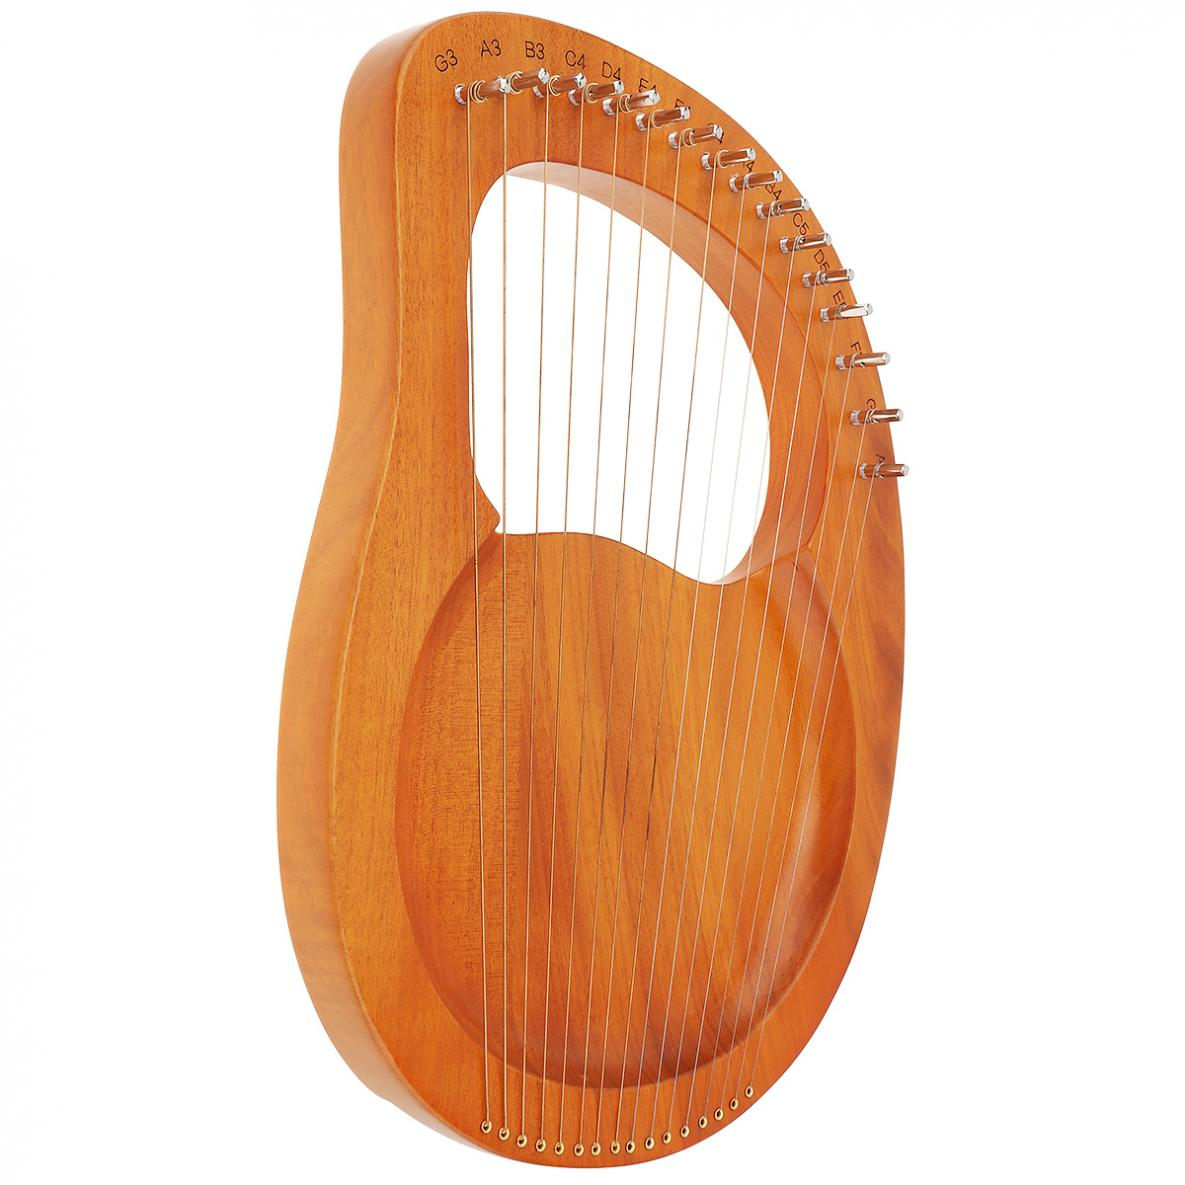 16 Strings Lyre Harp Solid Mahogany Wood with Pickup Tuning Hammer String Instrument for beginners / Professional Performance enlarge